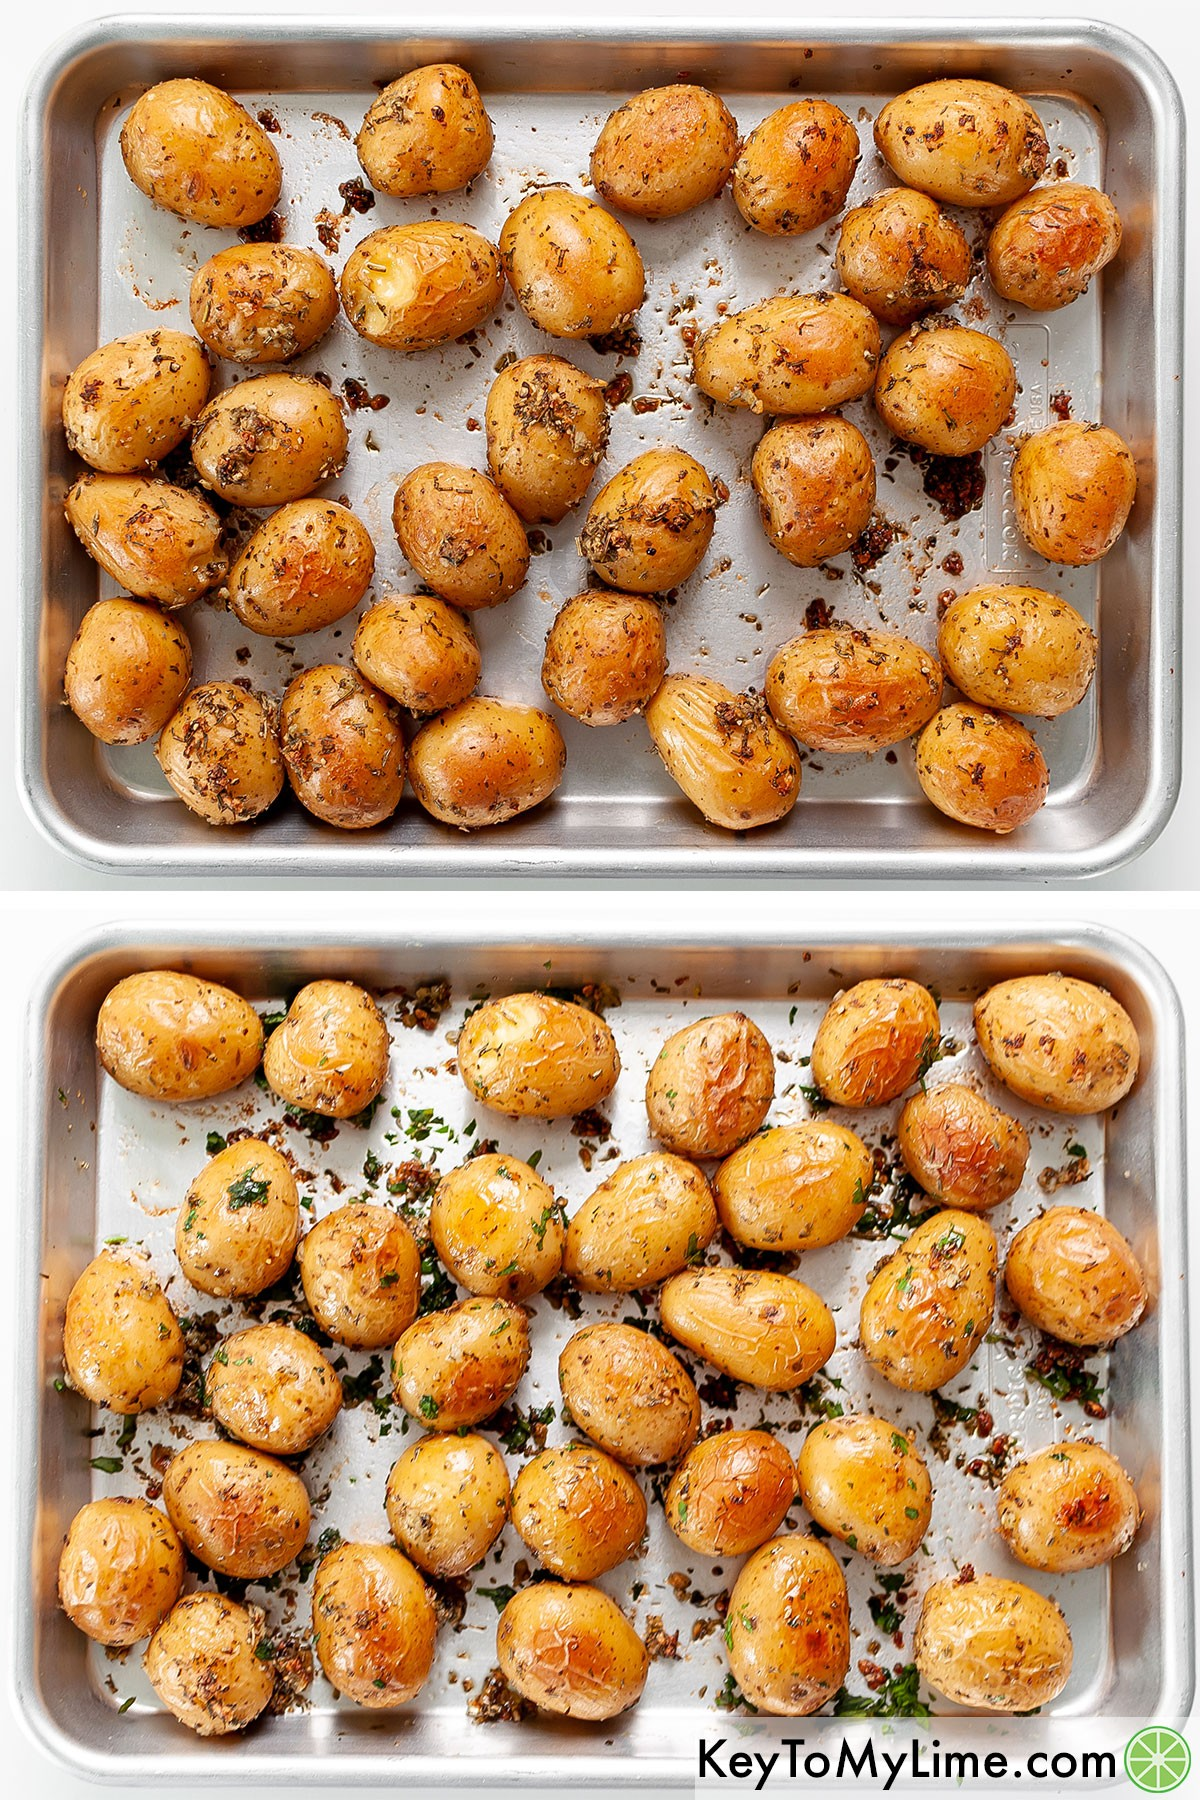 A process collage showing the roasted baby potatoes after baking and then after mixing with fresh parsley.